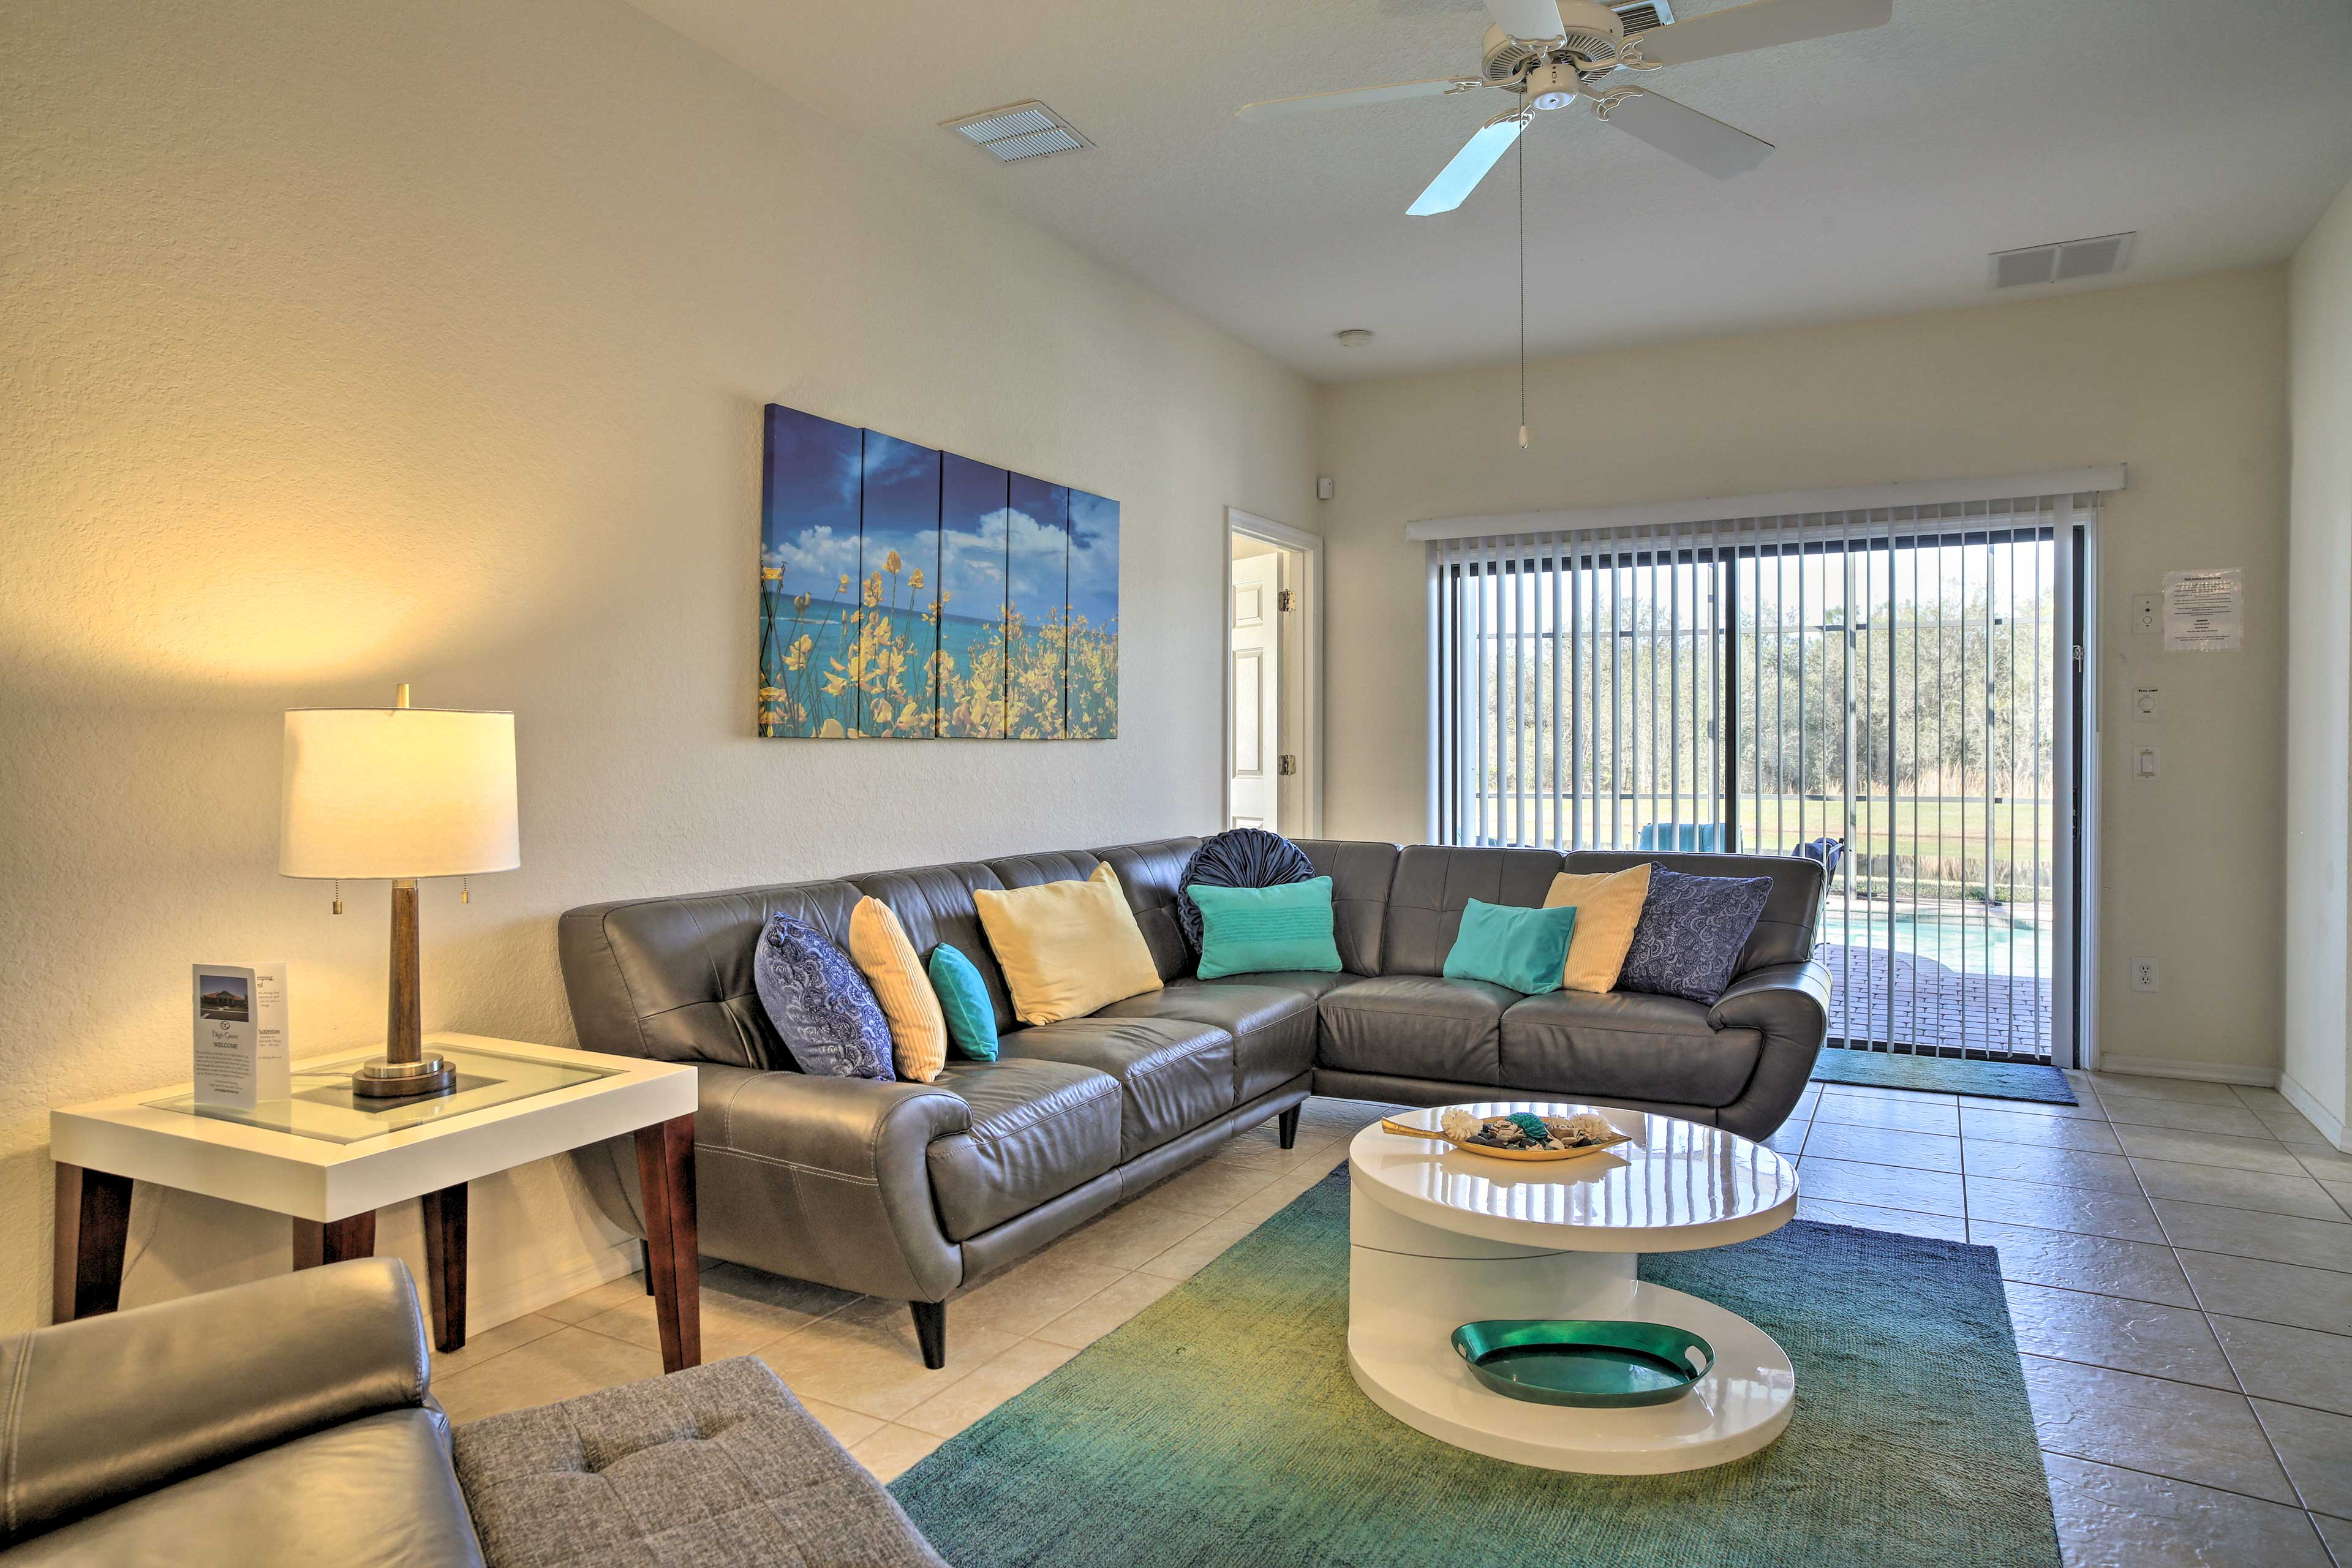 This home comfortably accommodates up to 8 guests.